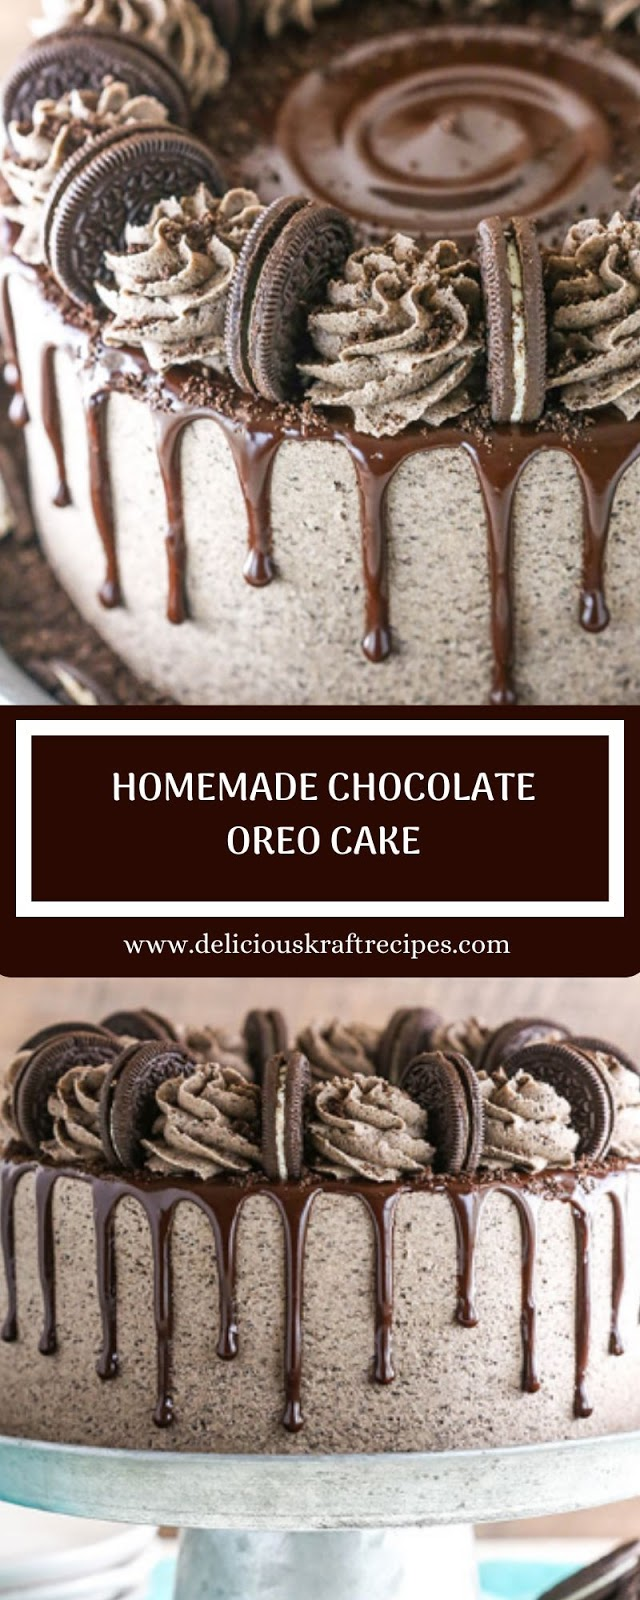 HOMEMADE CHOCOLATE OREO CAKE